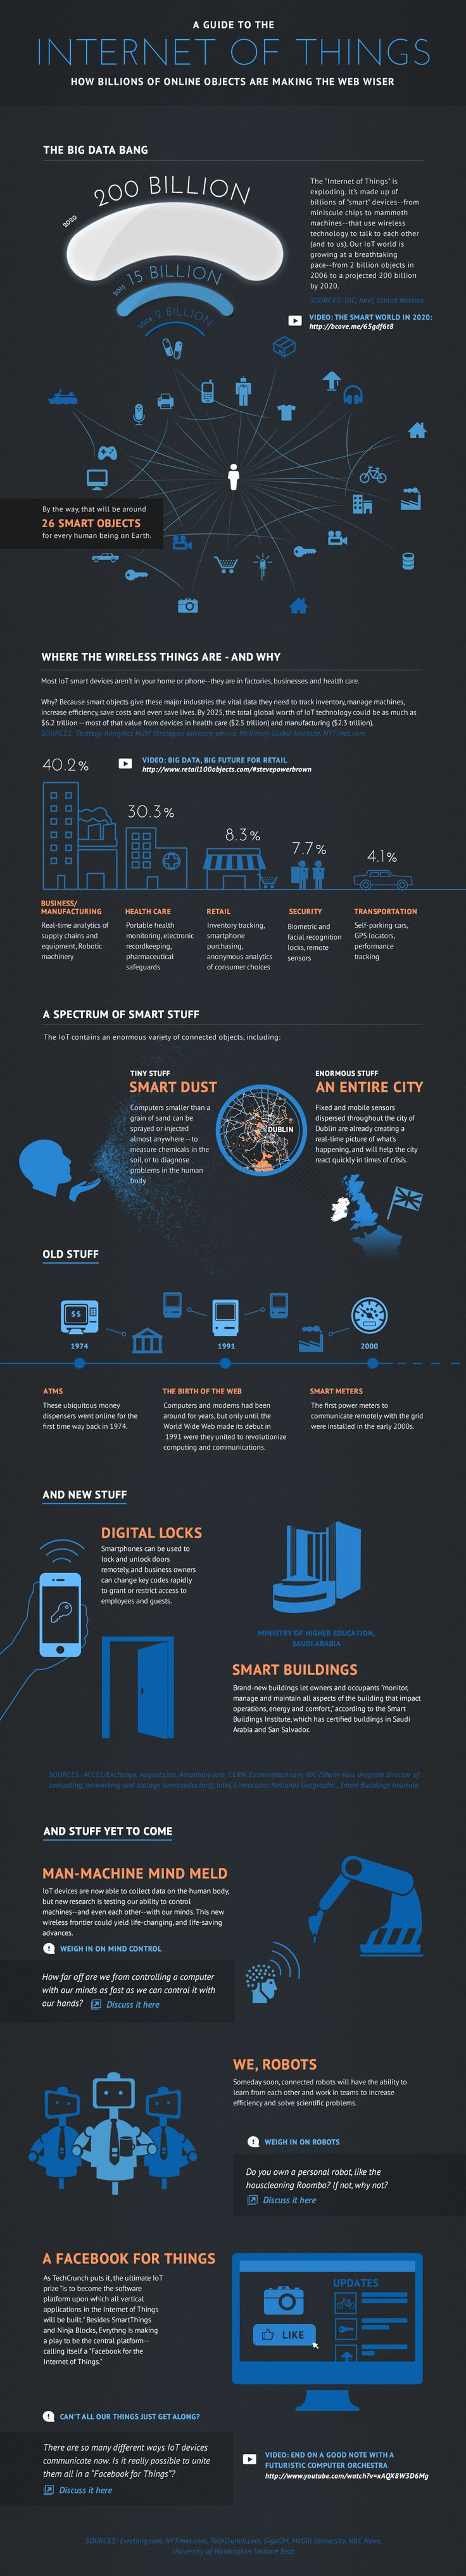 Infographic: Guide to The Internet of Things - Billions of online objects are making the Web wiser